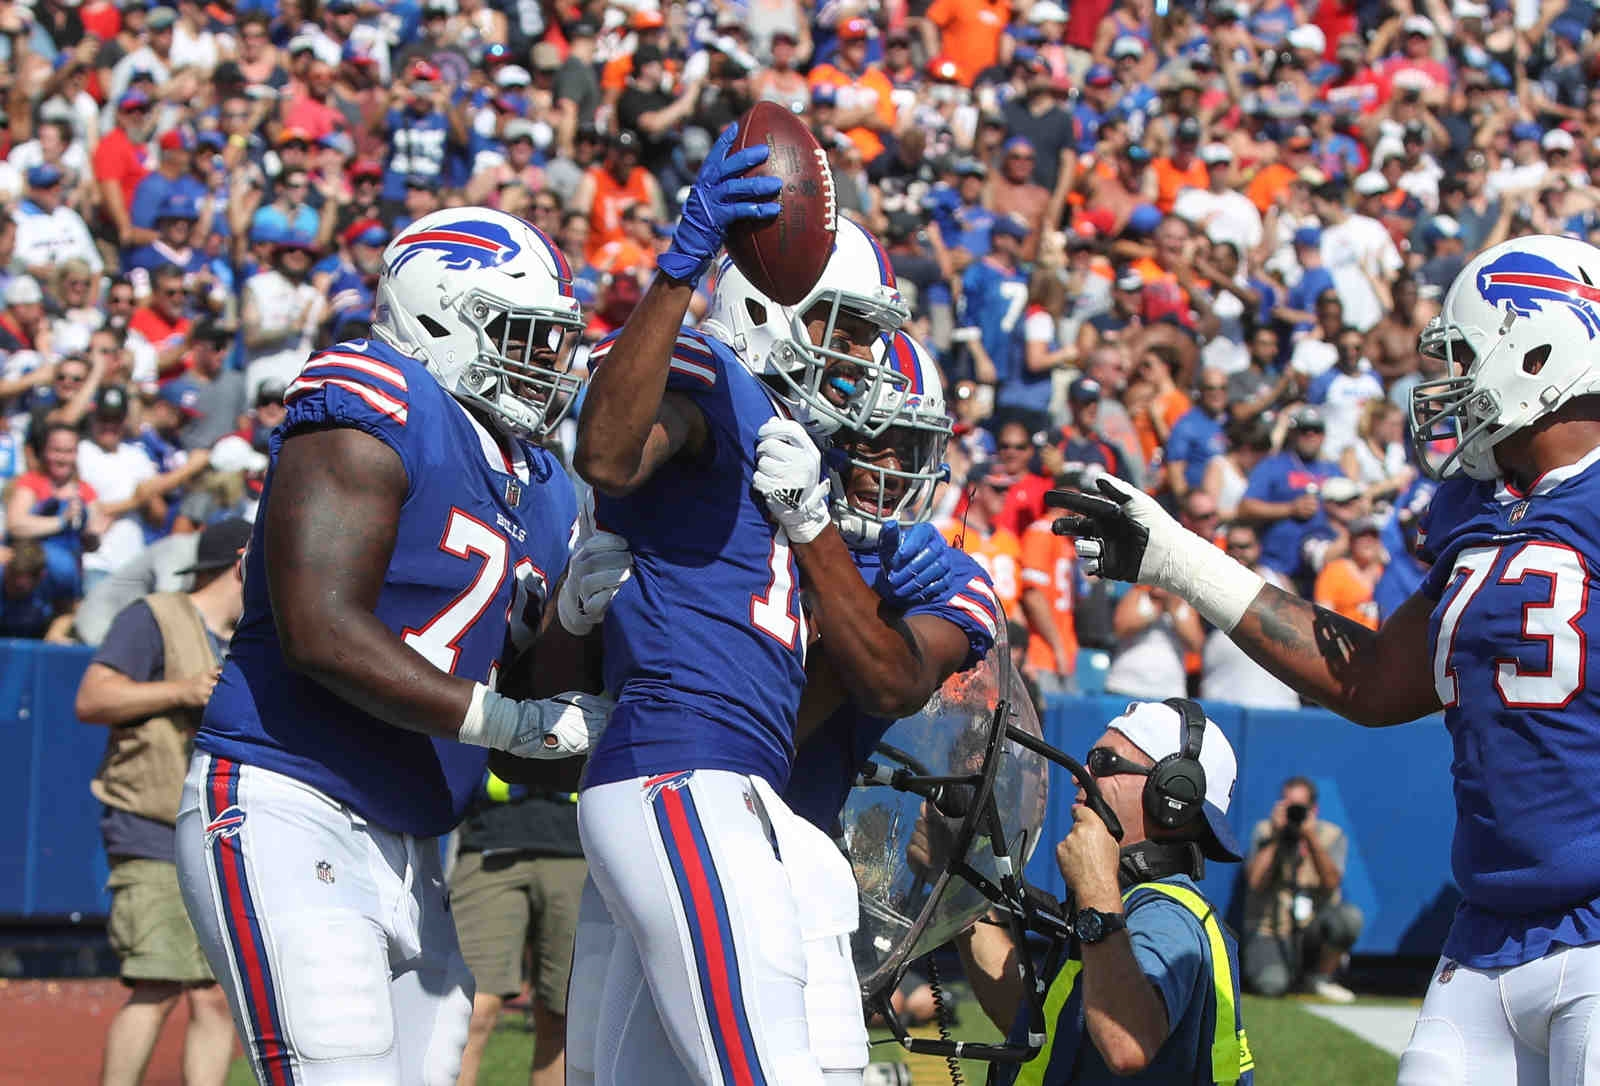 Buffalo Bills wide receiver Andre Holmes (18) celebrates his touchdown against the Broncos with teammates in the second quarter.